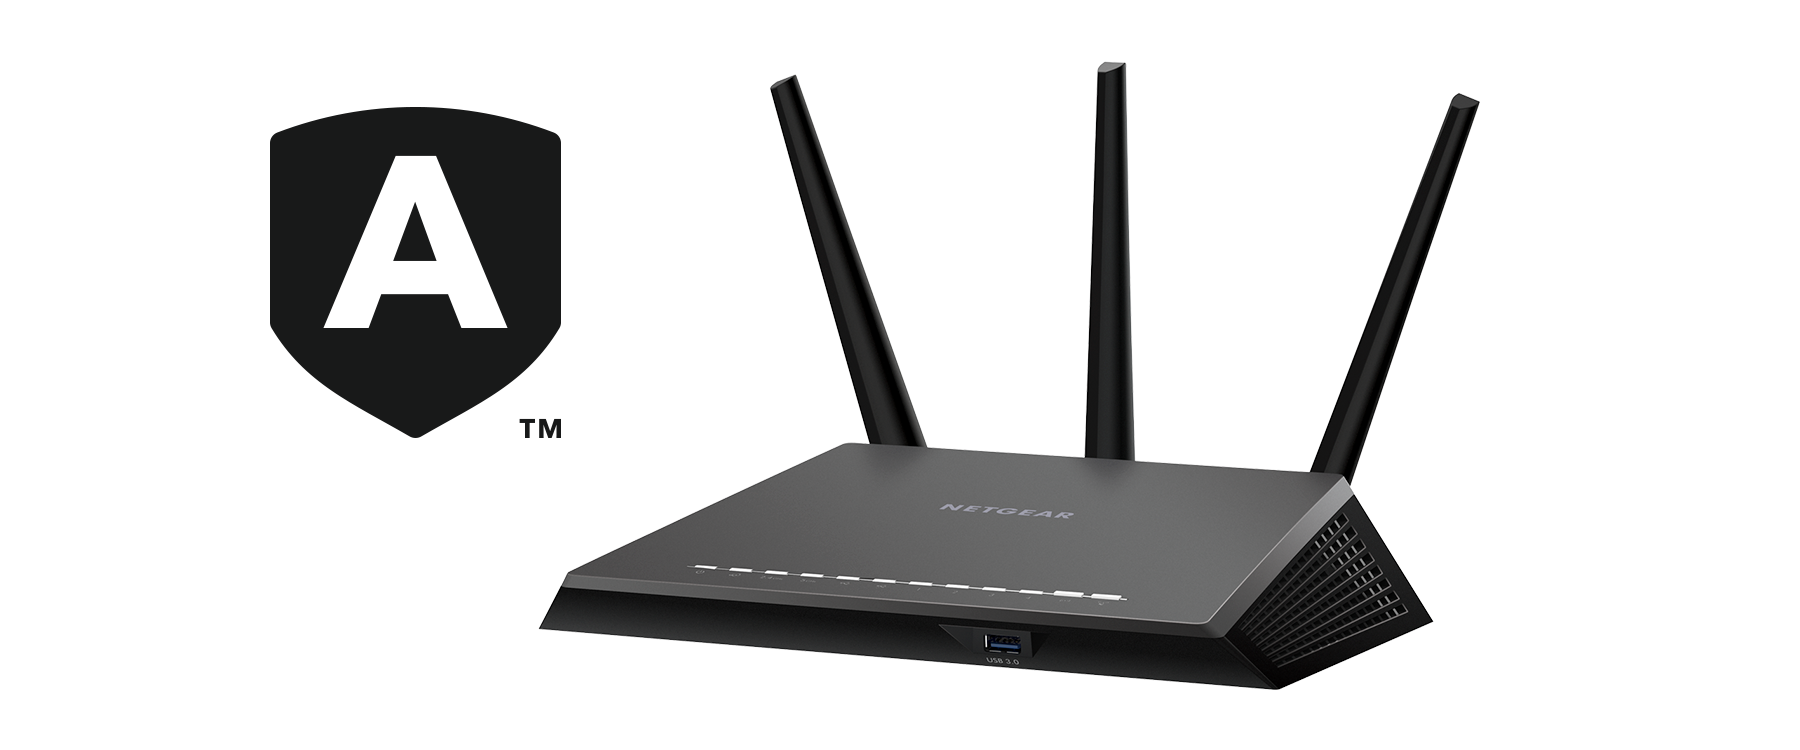 Wireless Routers For Home Netgear Linksys E2500 Ap N600 Dual Band Router Ac2300 Nighthawk Smart Wifi With Armor